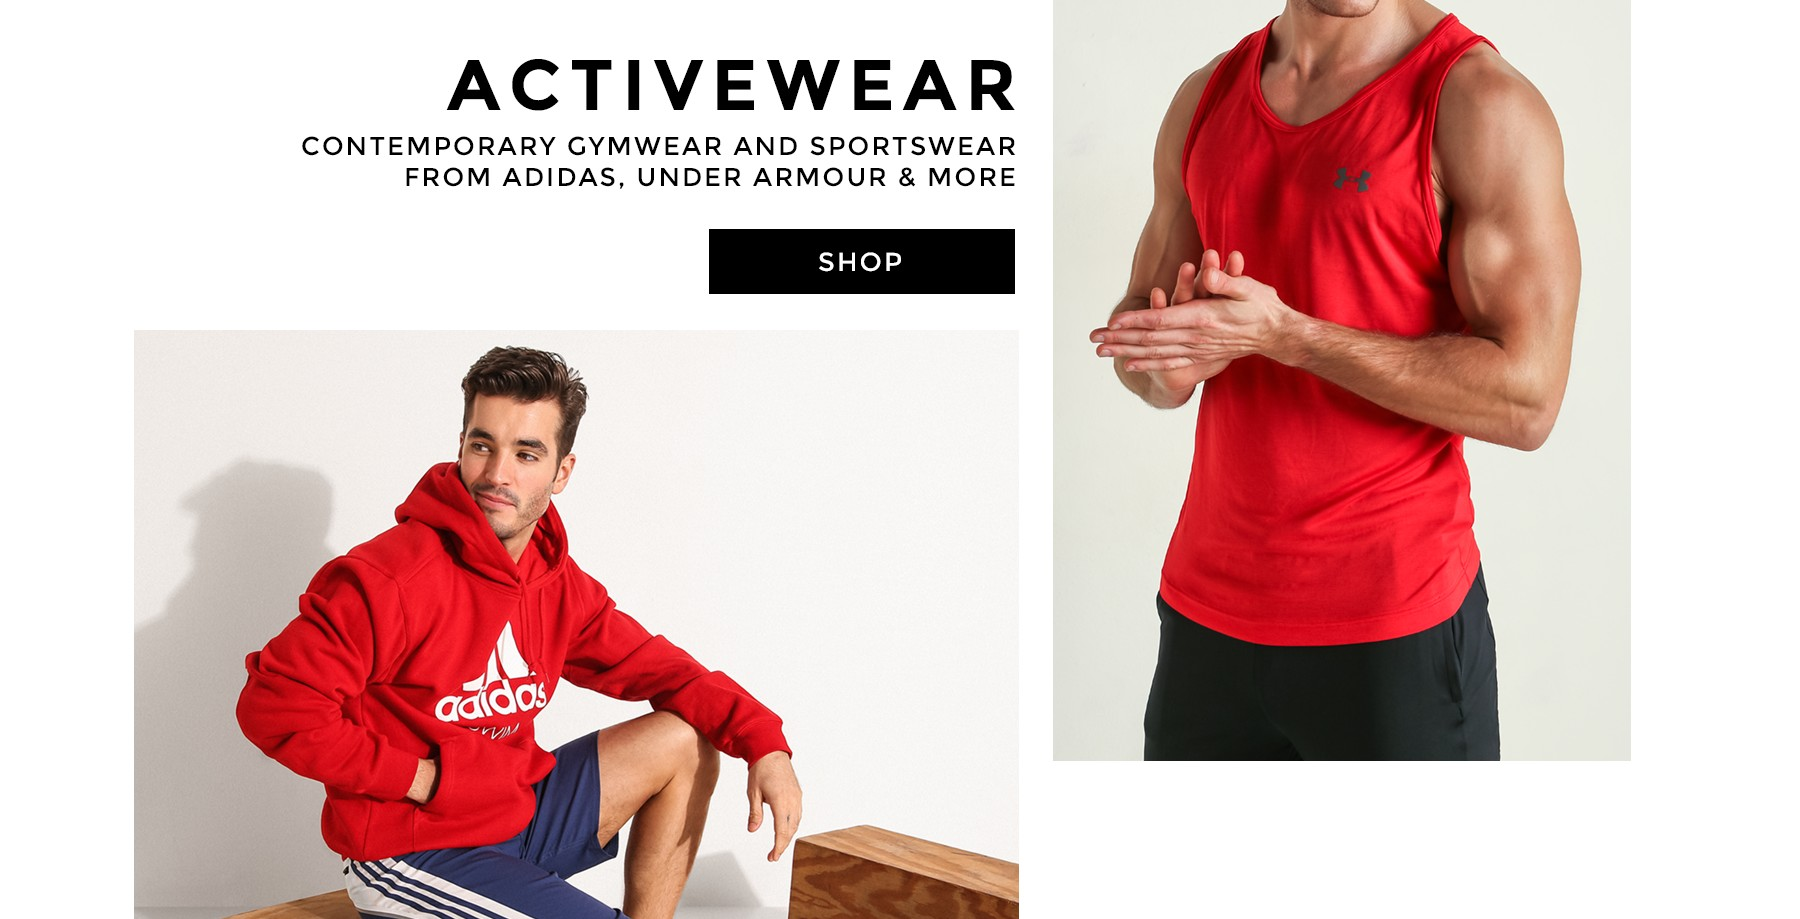 Tank tops and hoodies from Adidas and Under Armour